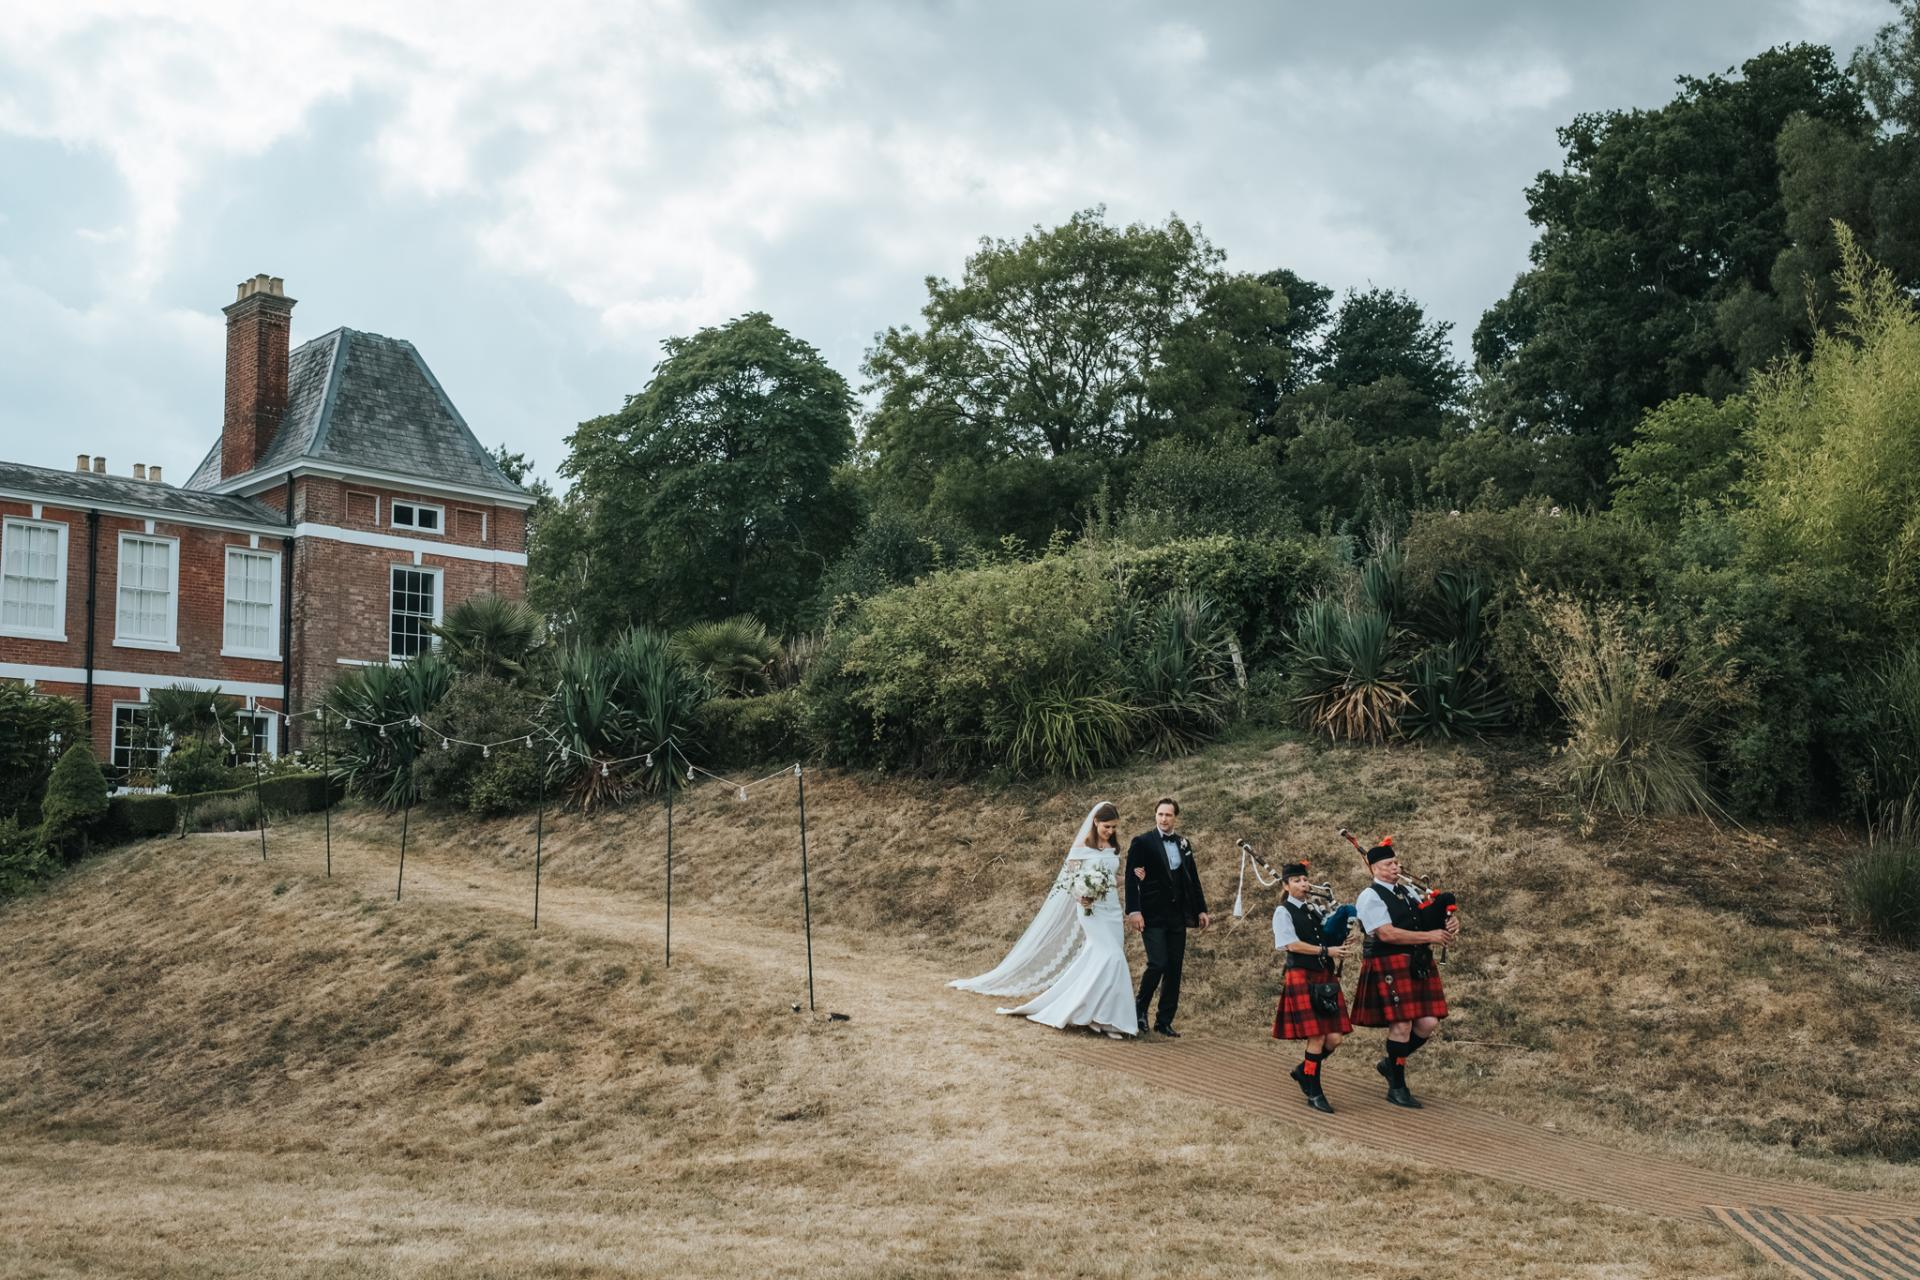 Laura & Patrick | Grace & Honour Weddings Exeter Devon